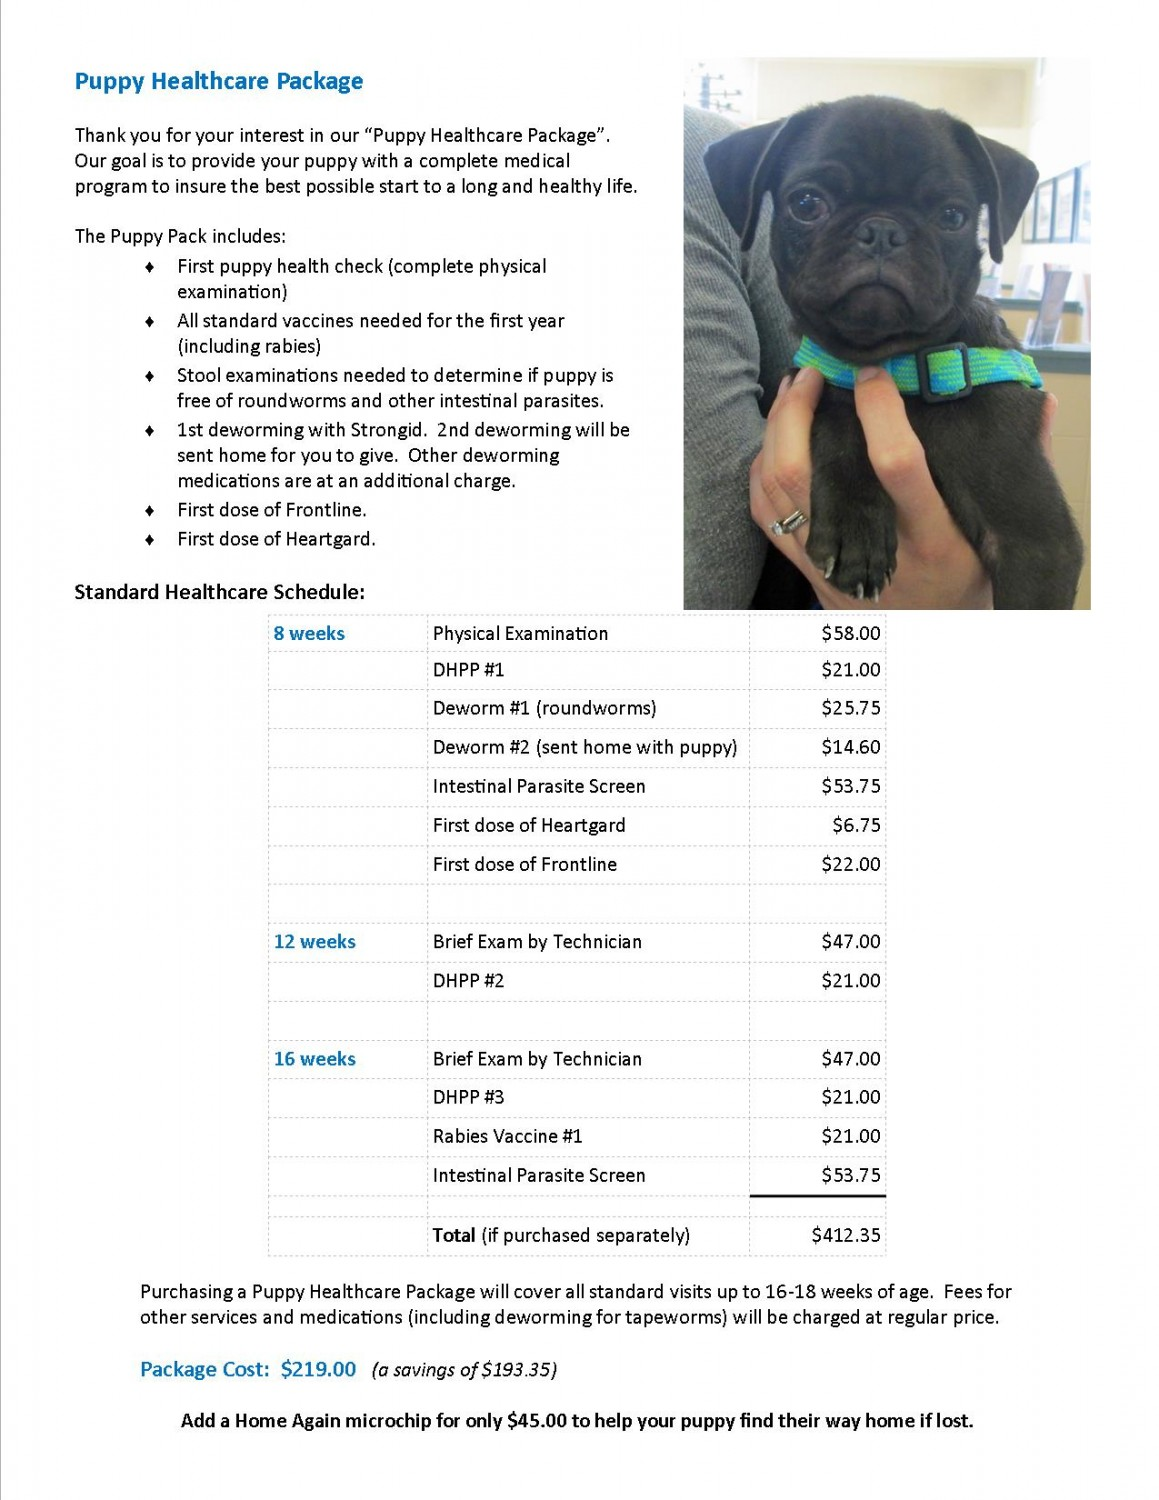 Puppy Healthcare Package Cool Animal Hospital Cool Ca